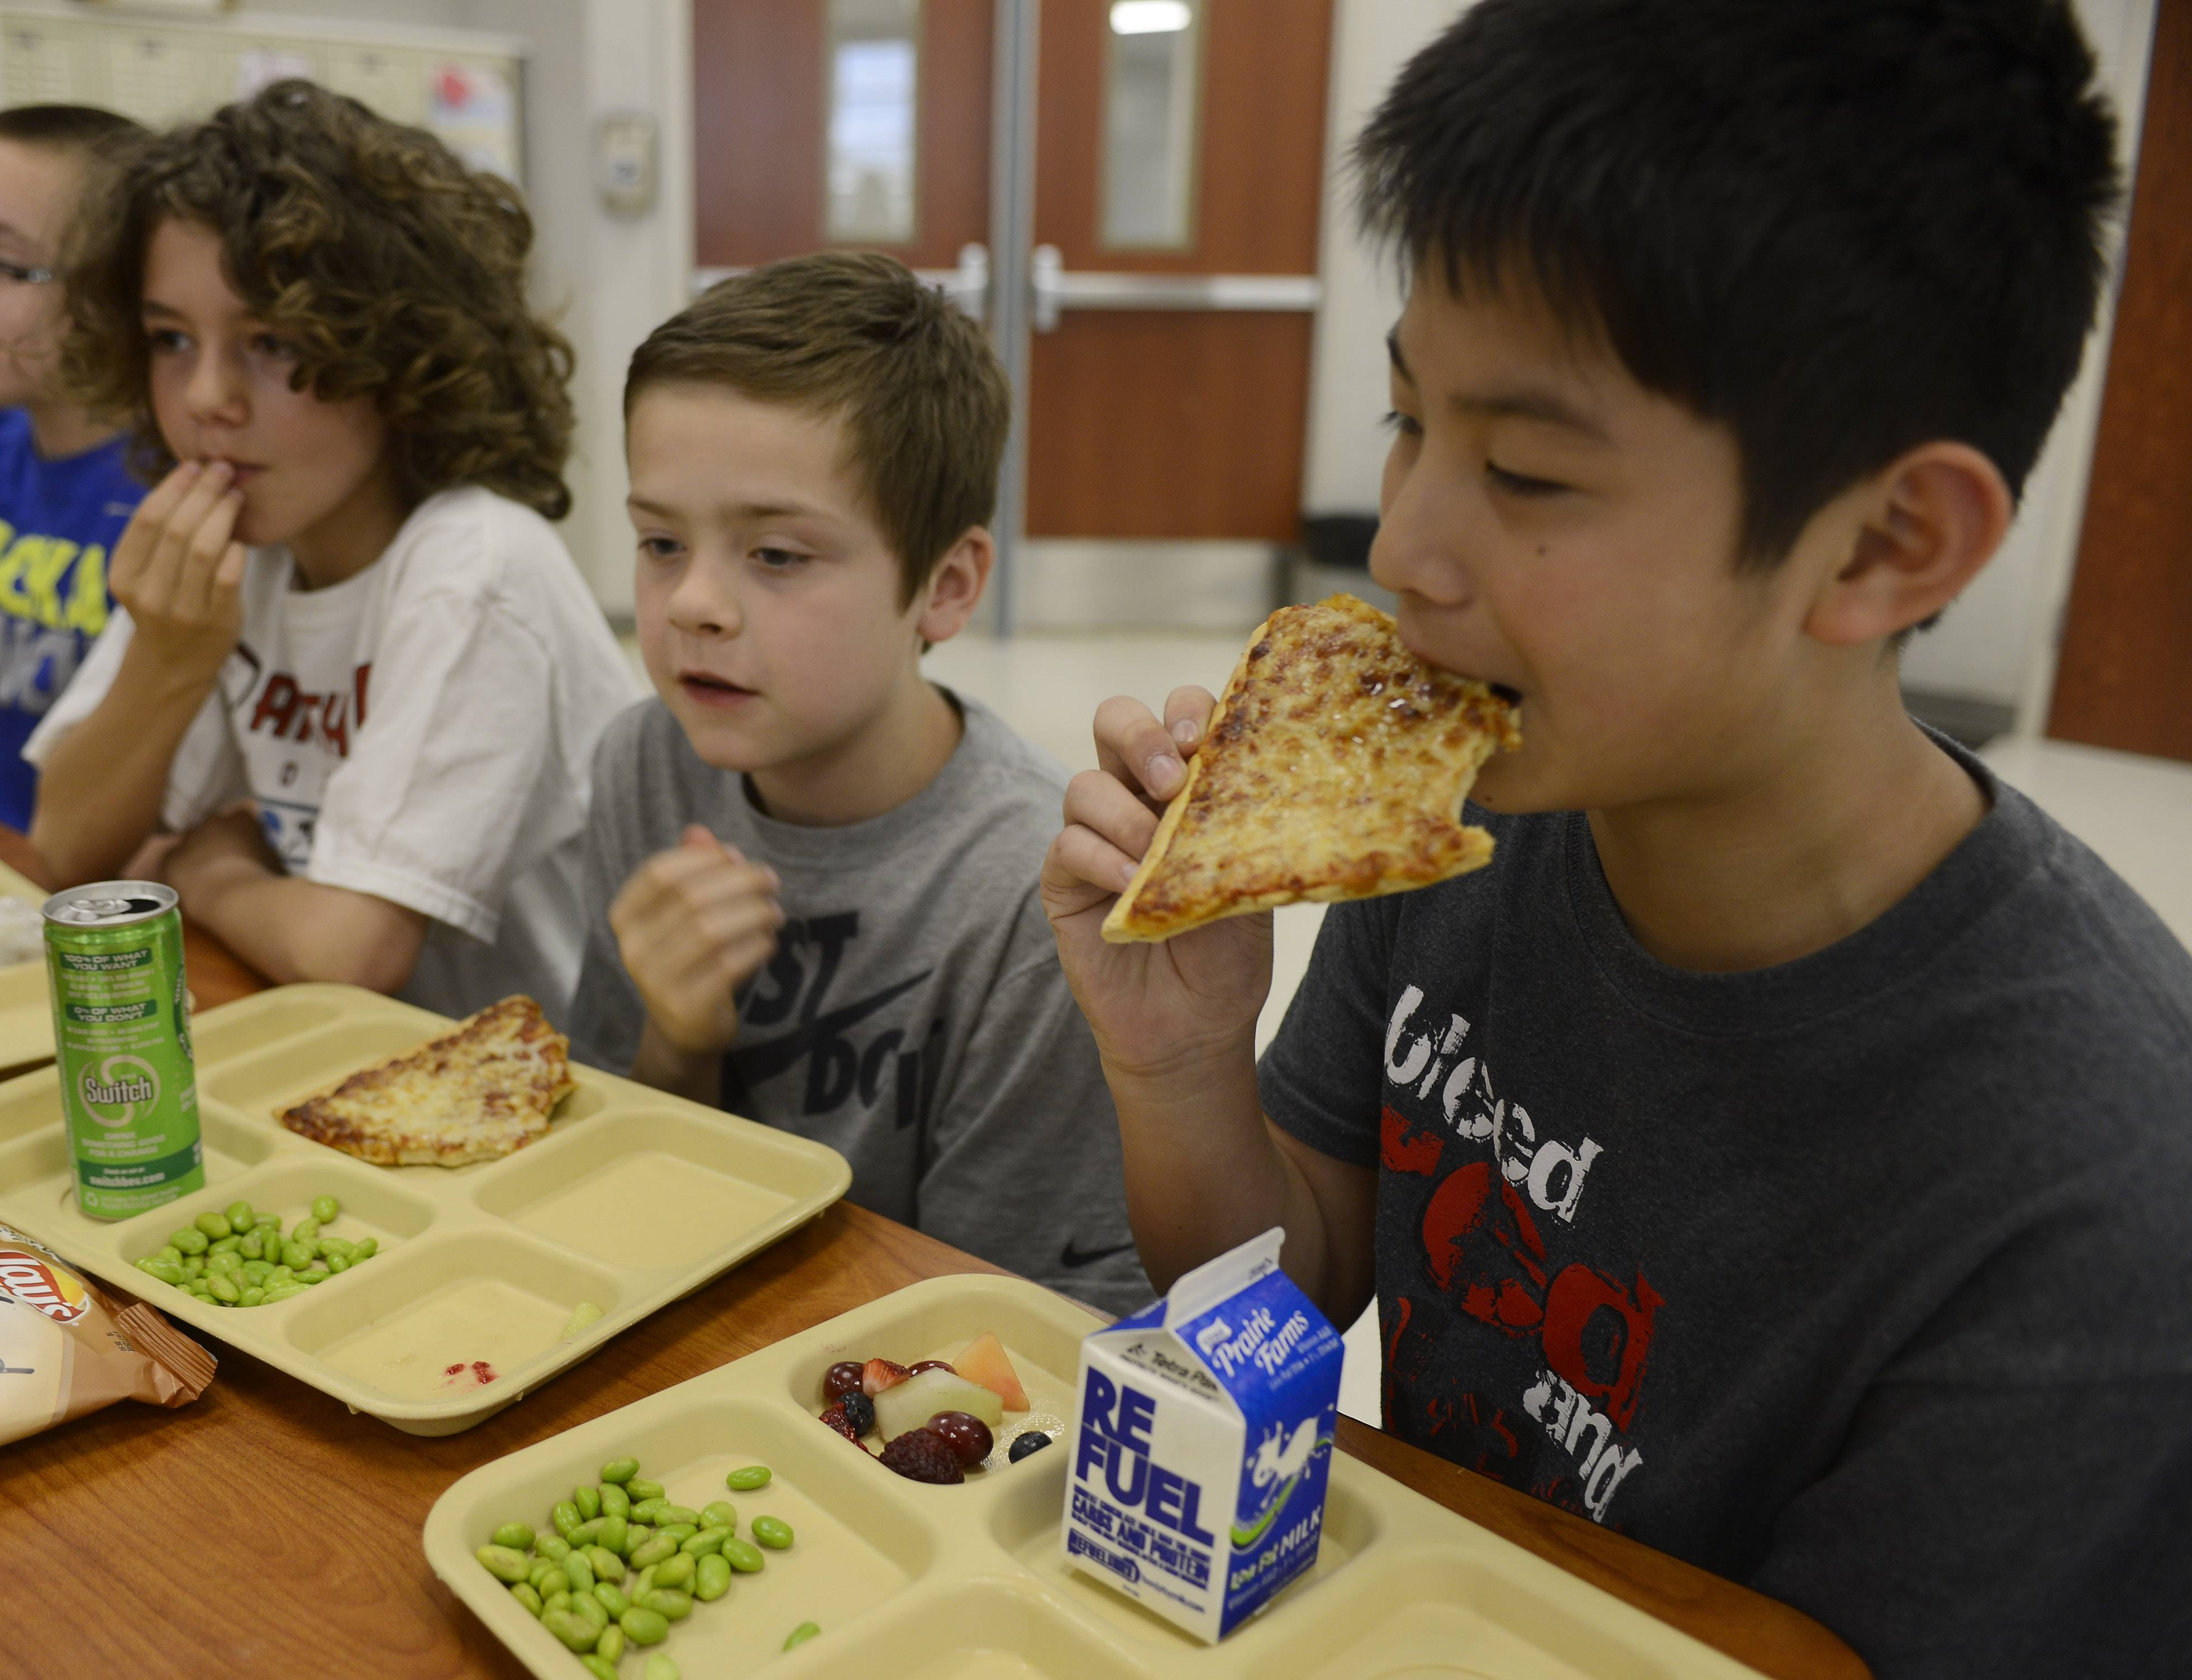 Fifth-graders, from left, Matthew Callas, Max Thompson and Adam Wess selected fruits and vegetables with their lunch in May at Fremont Intermediate School near Mundelein. The school district allows students to have sweet treats as long as healthy food is also on the table.